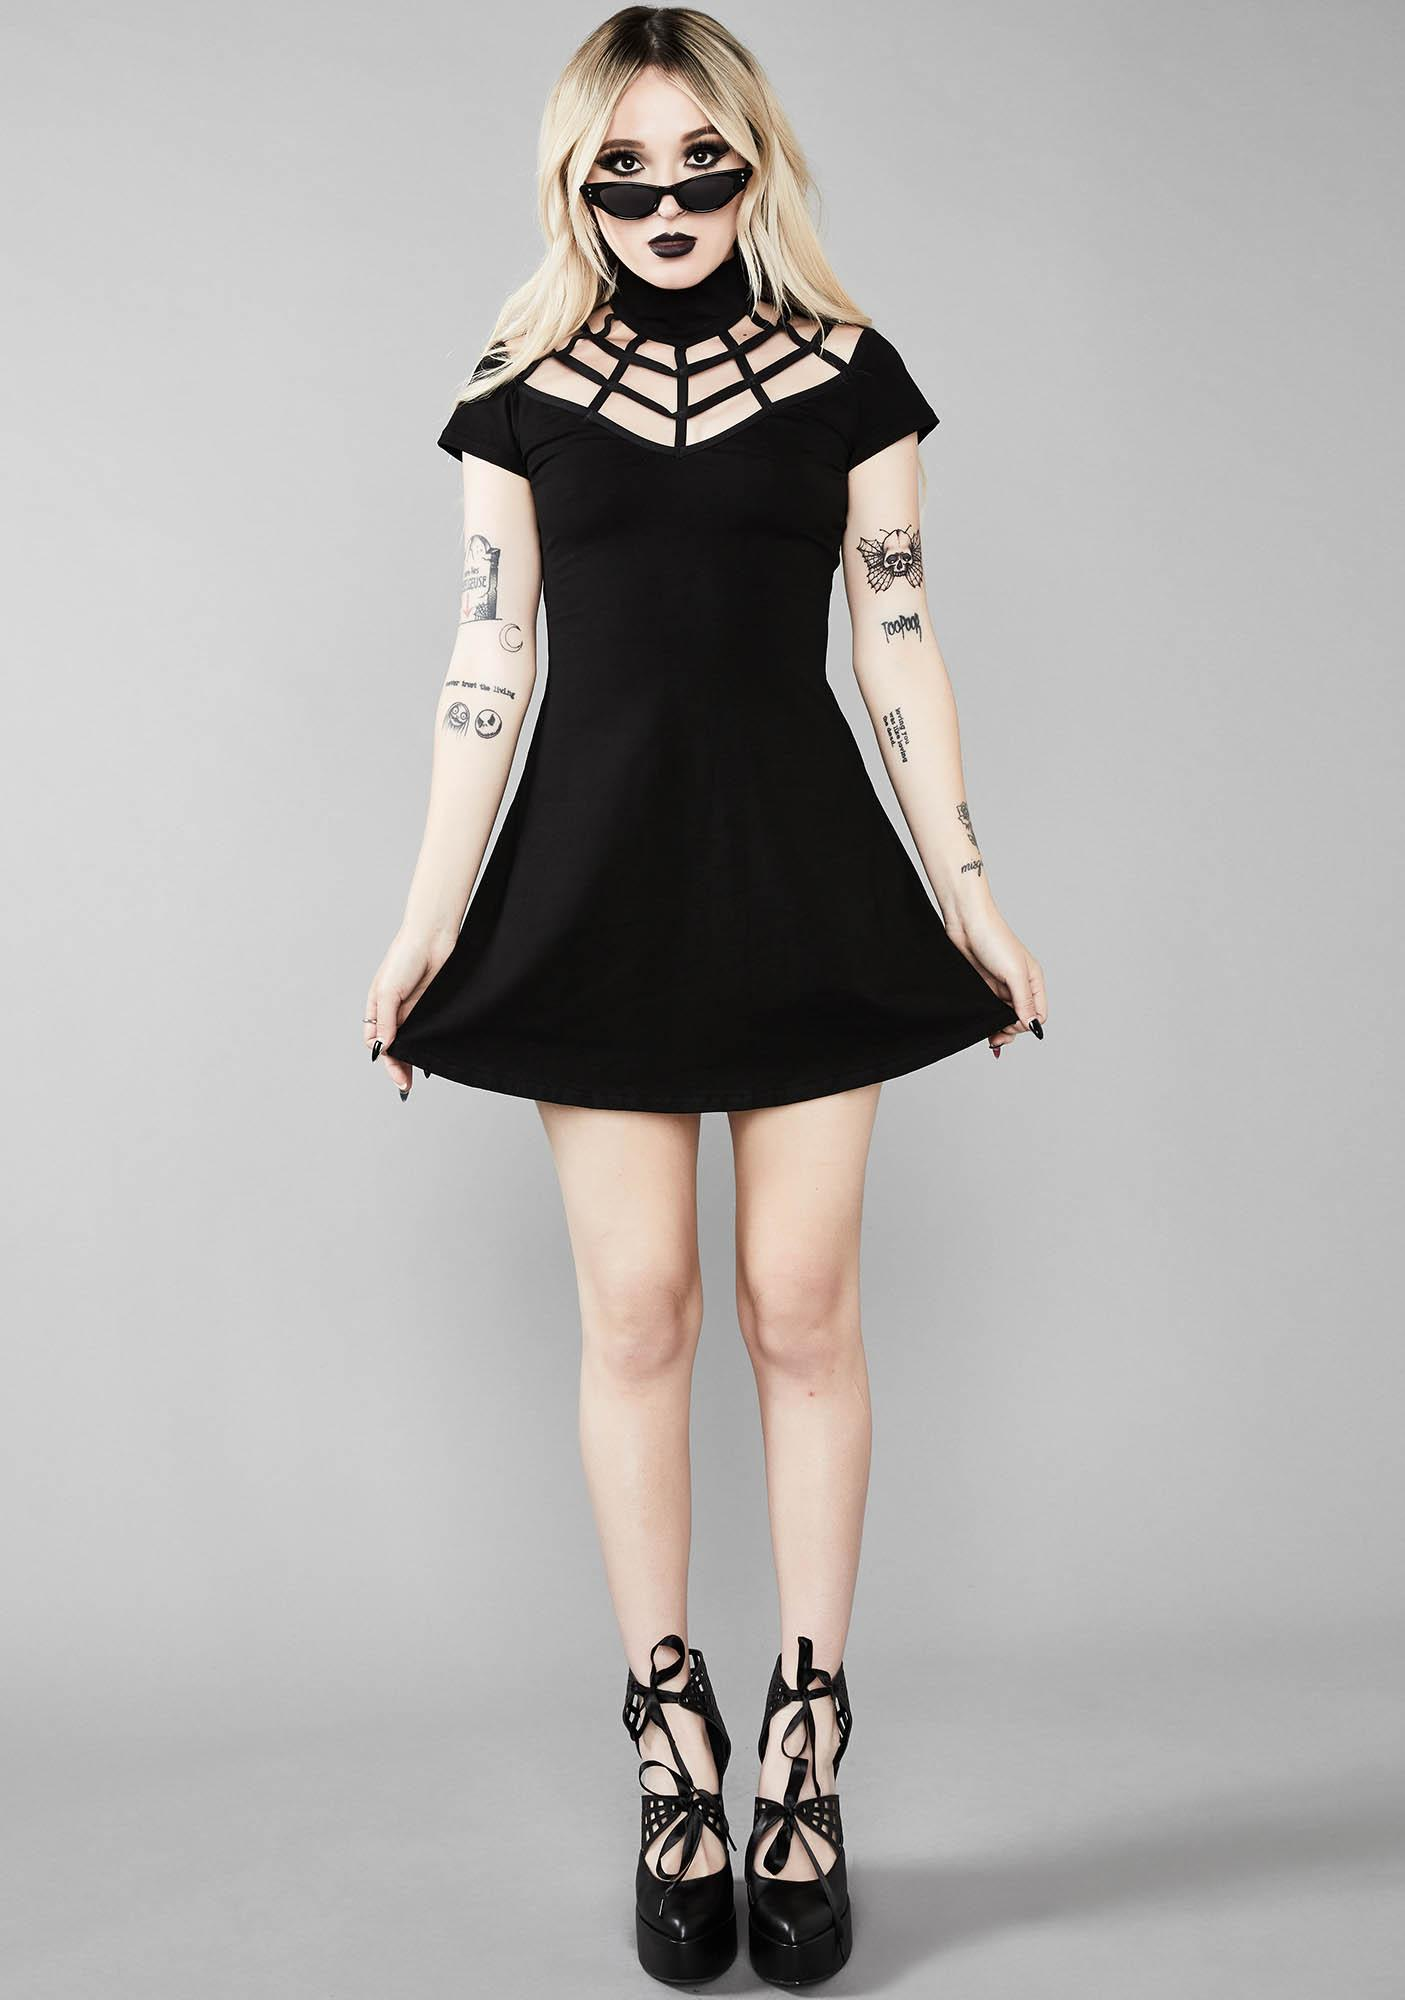 Widow Dark Web A-line Dress